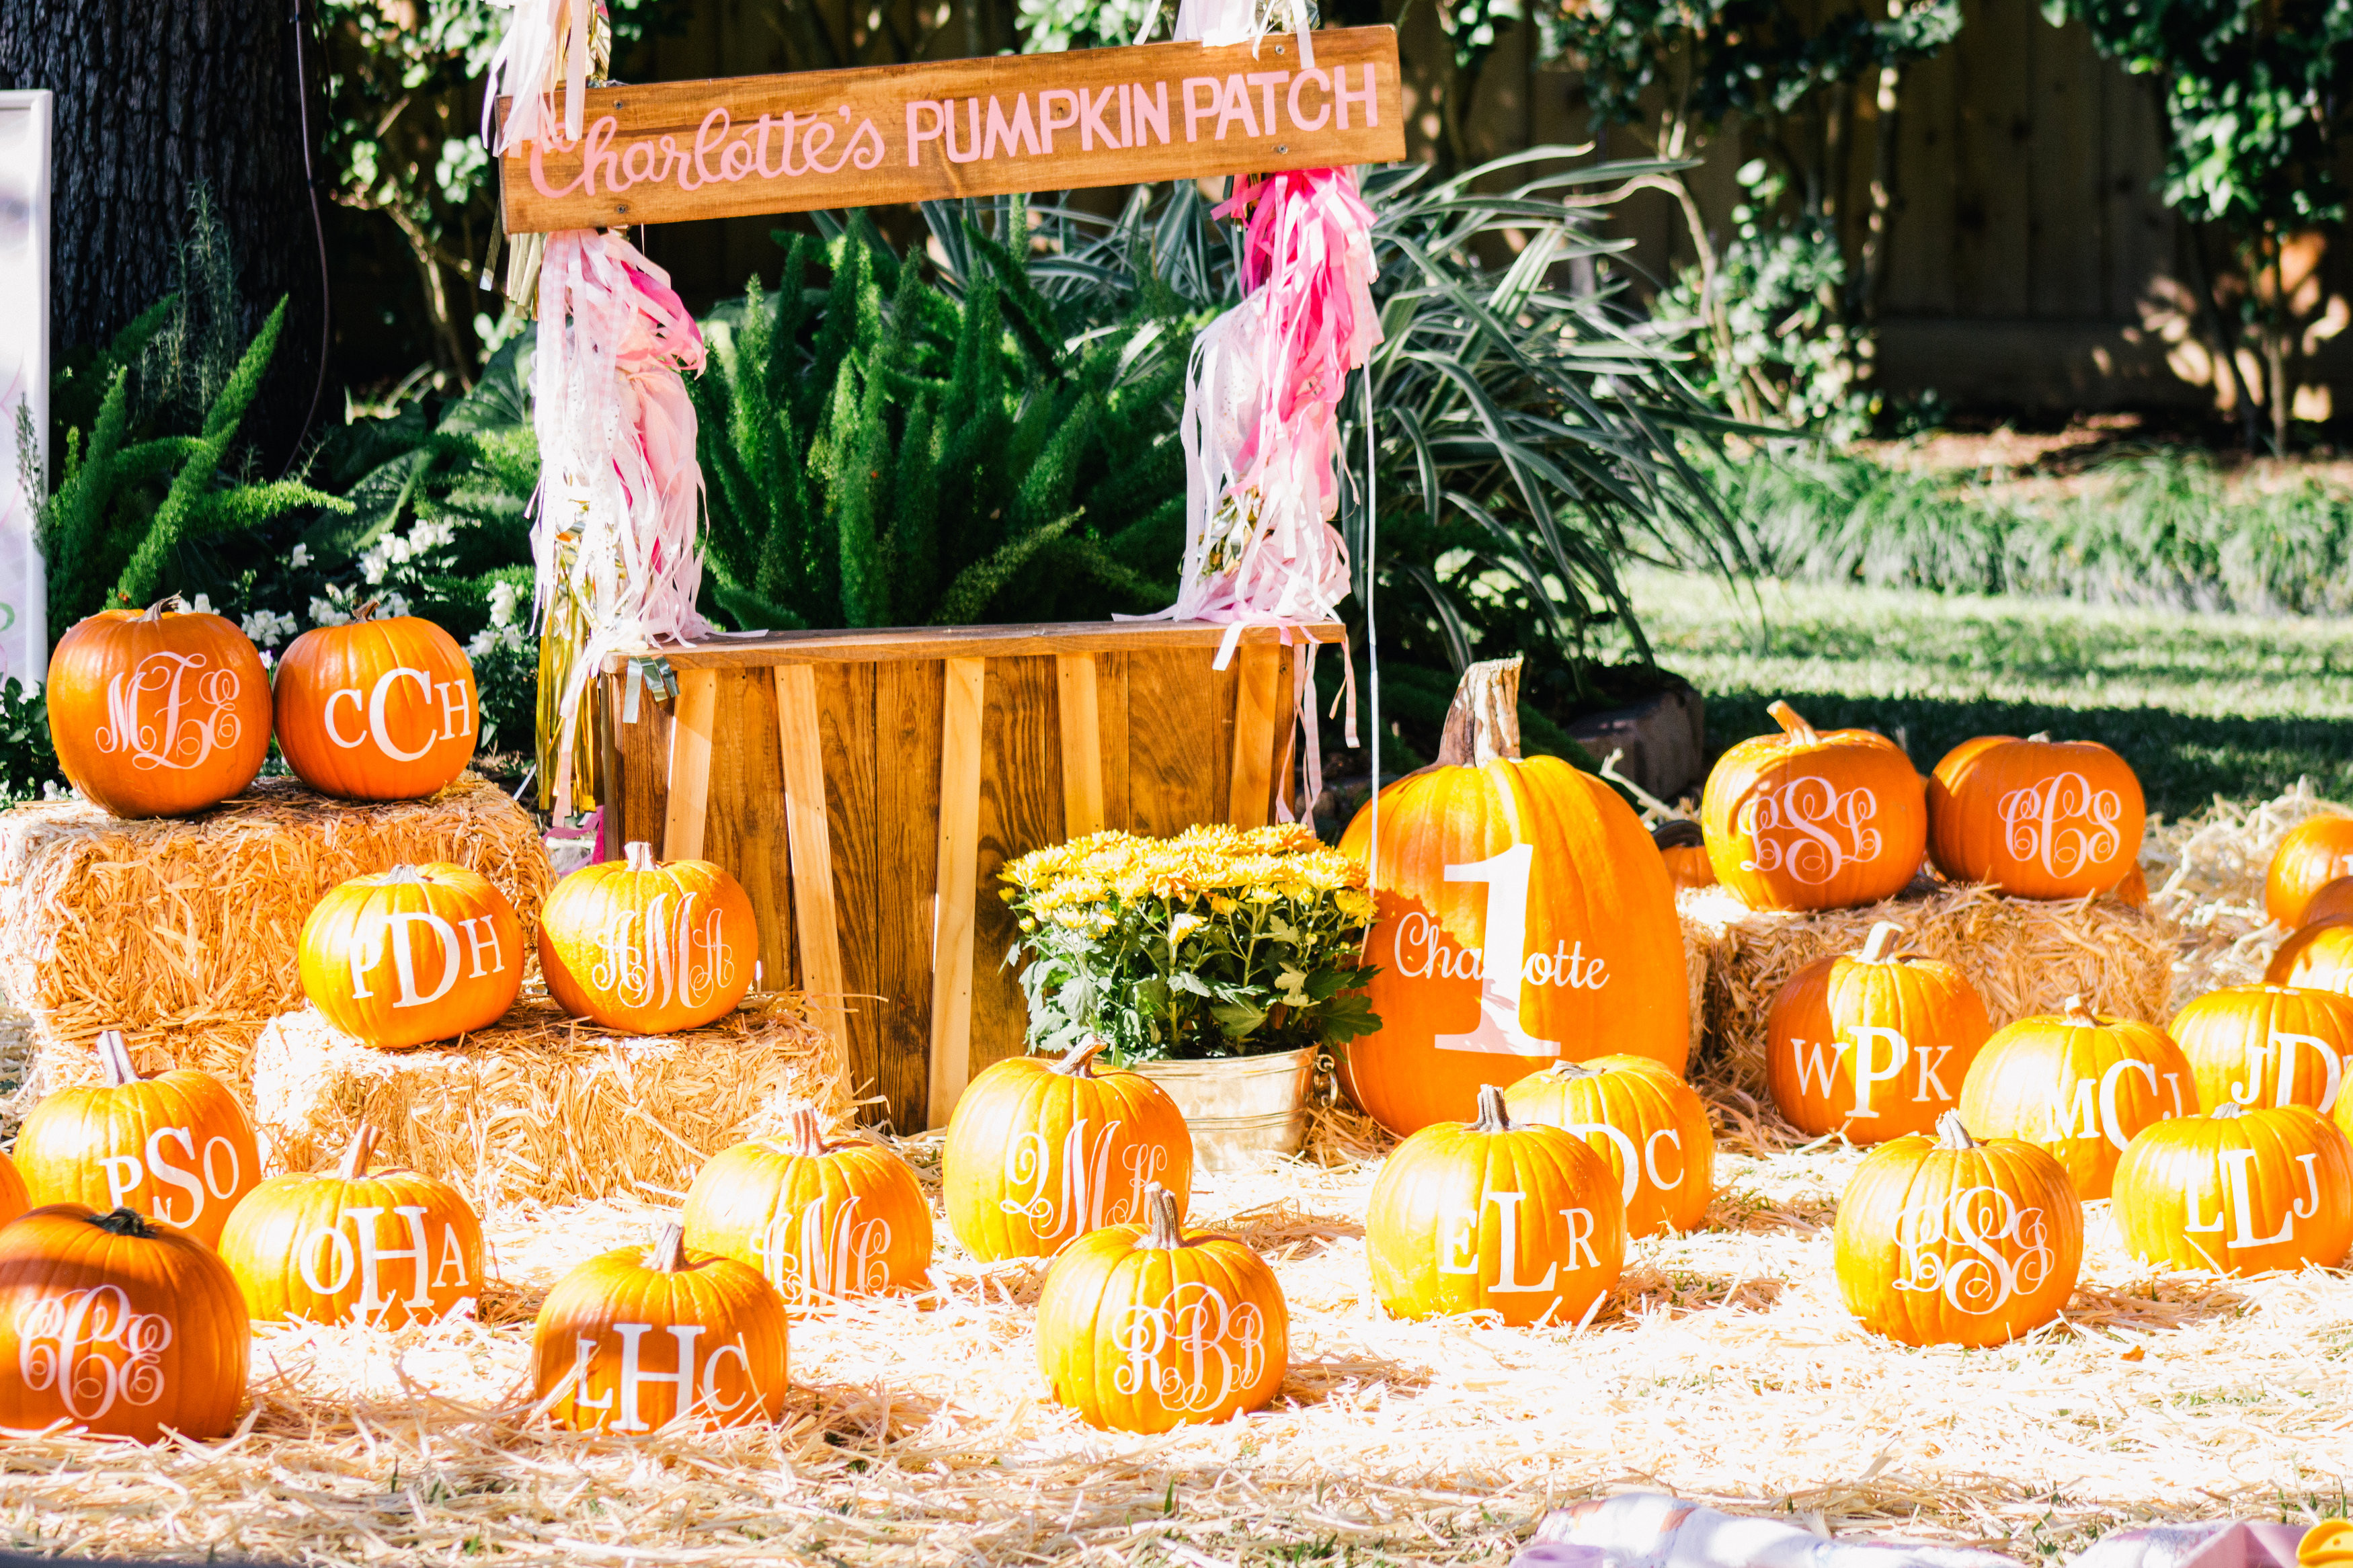 Best ideas about Pumpkin Patch Birthday Party . Save or Pin MLM A pumpkin patch birthday party L Avenue Now.